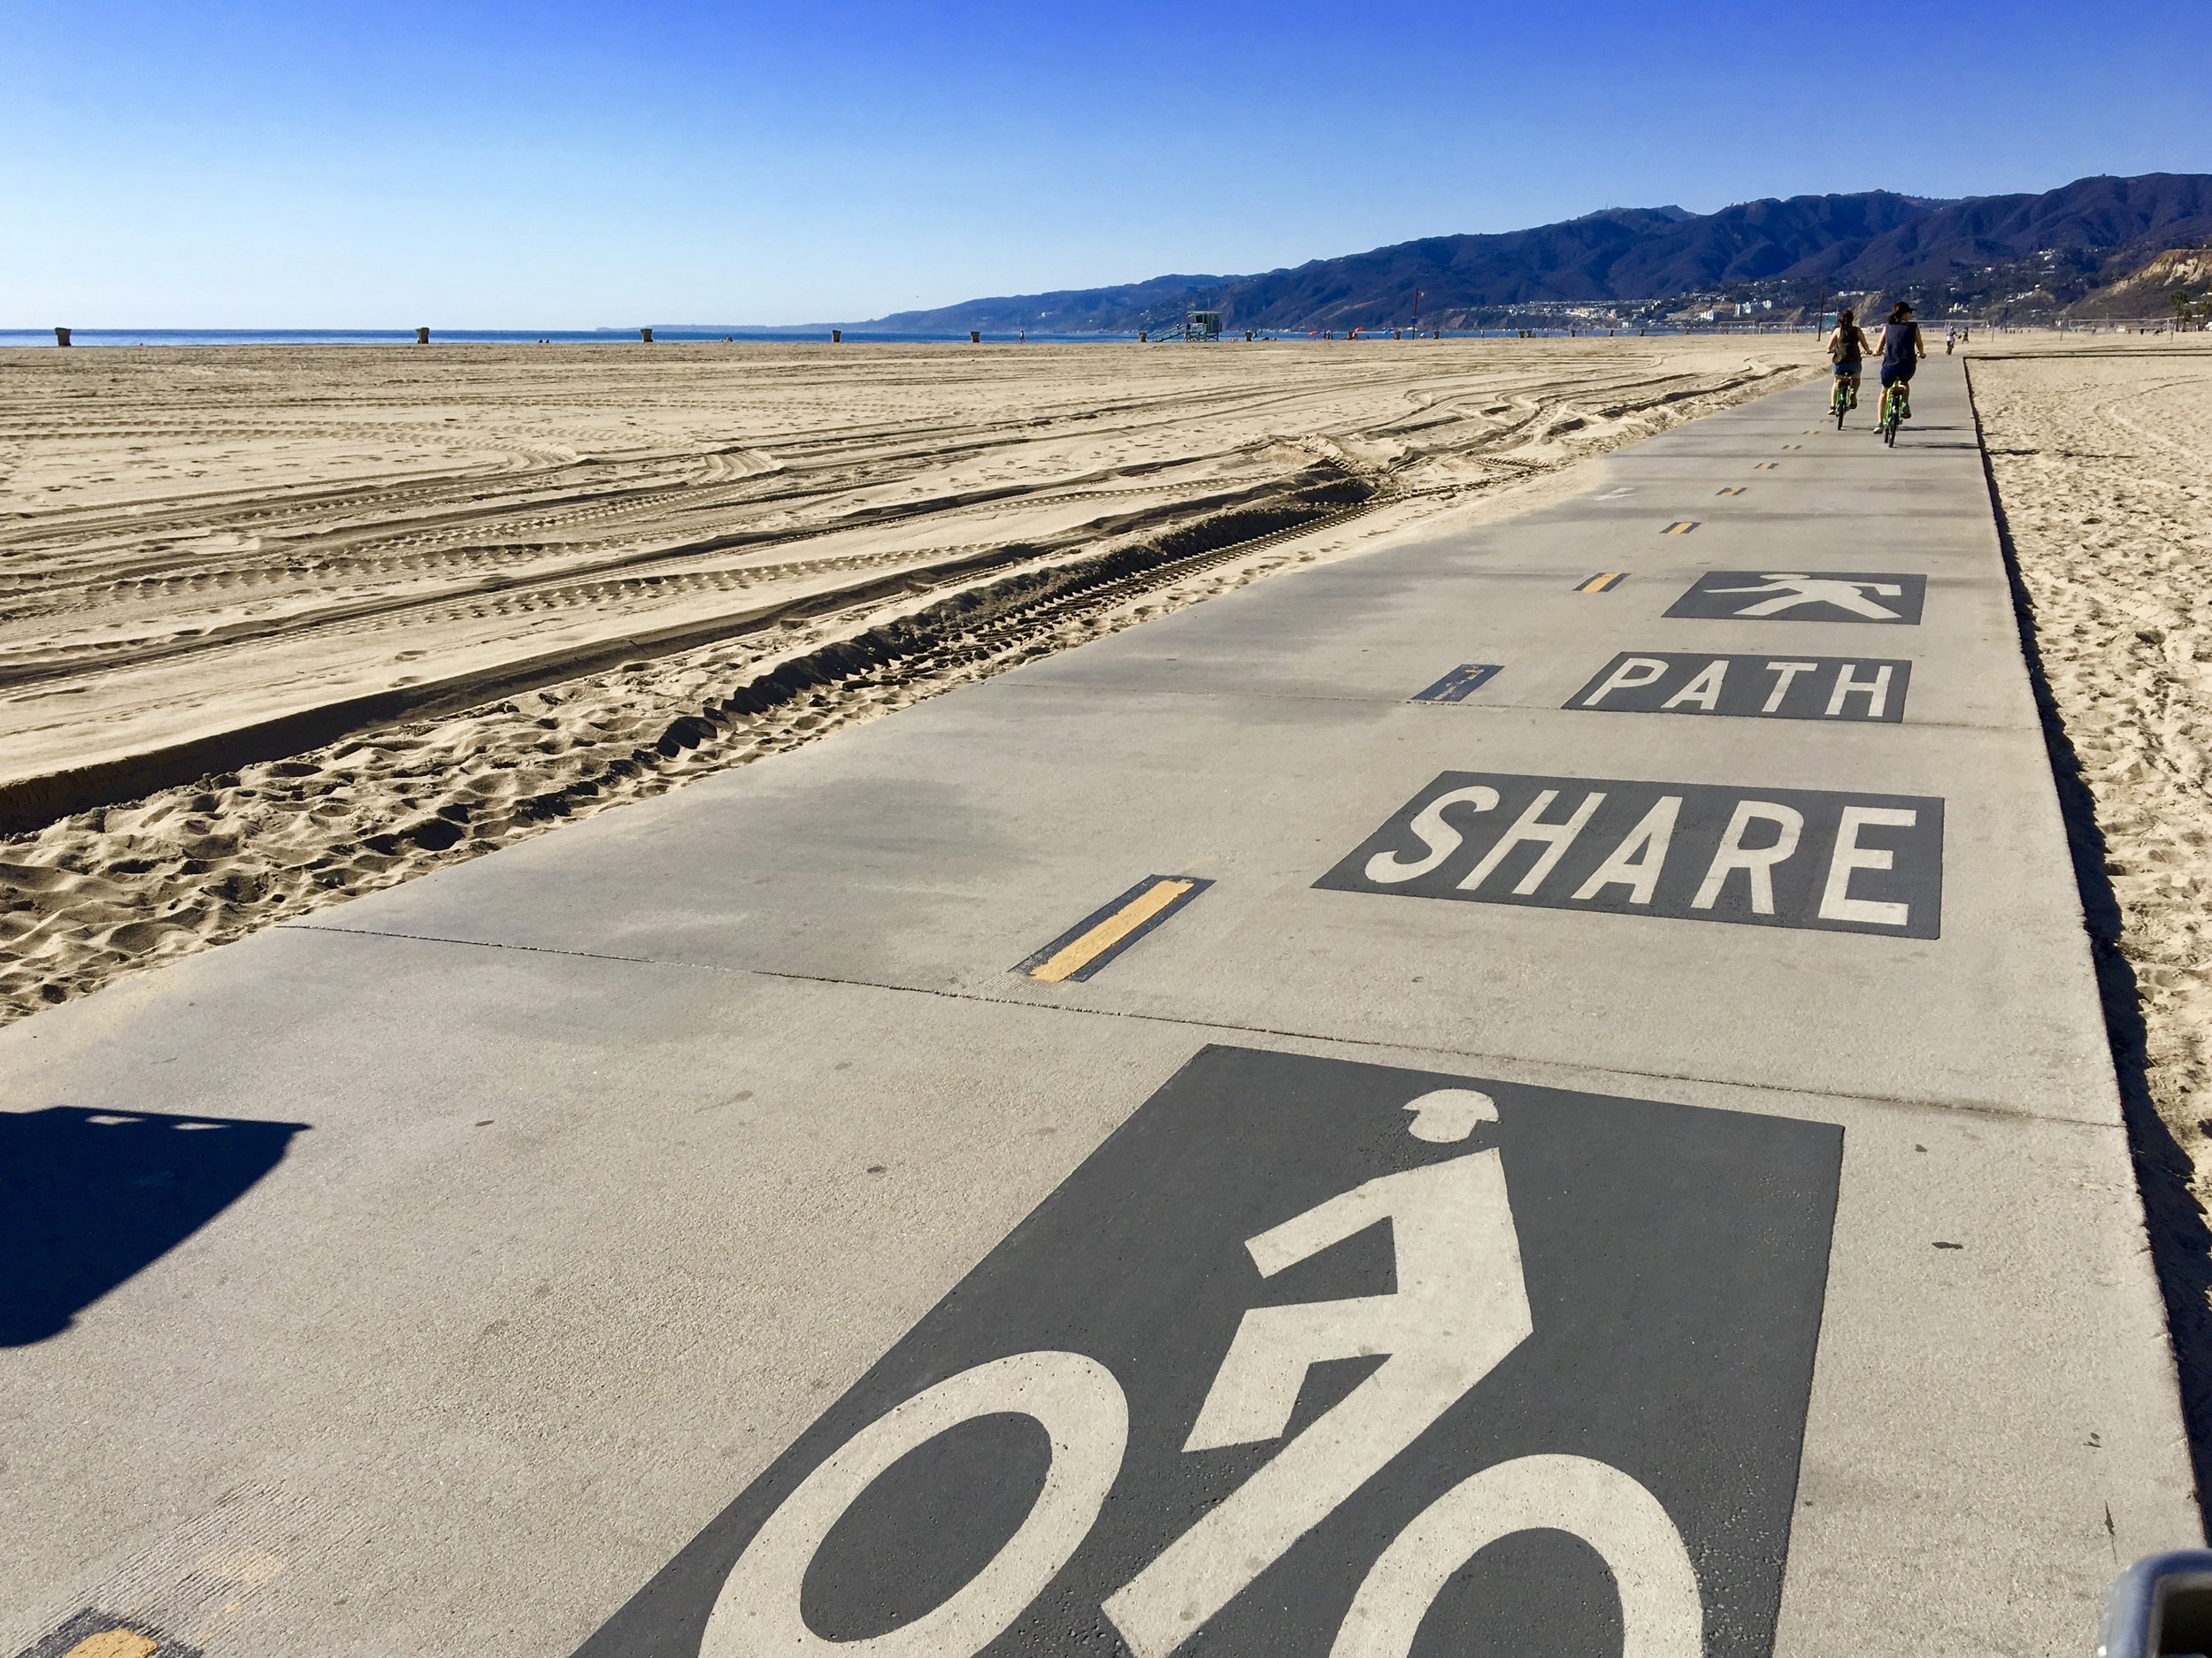 Sometimes the best thing to do is go for a bike ride at the beach in Santa Monica. A great reminder of the wisdom to share the path with everyone, whether we agree with them or not.